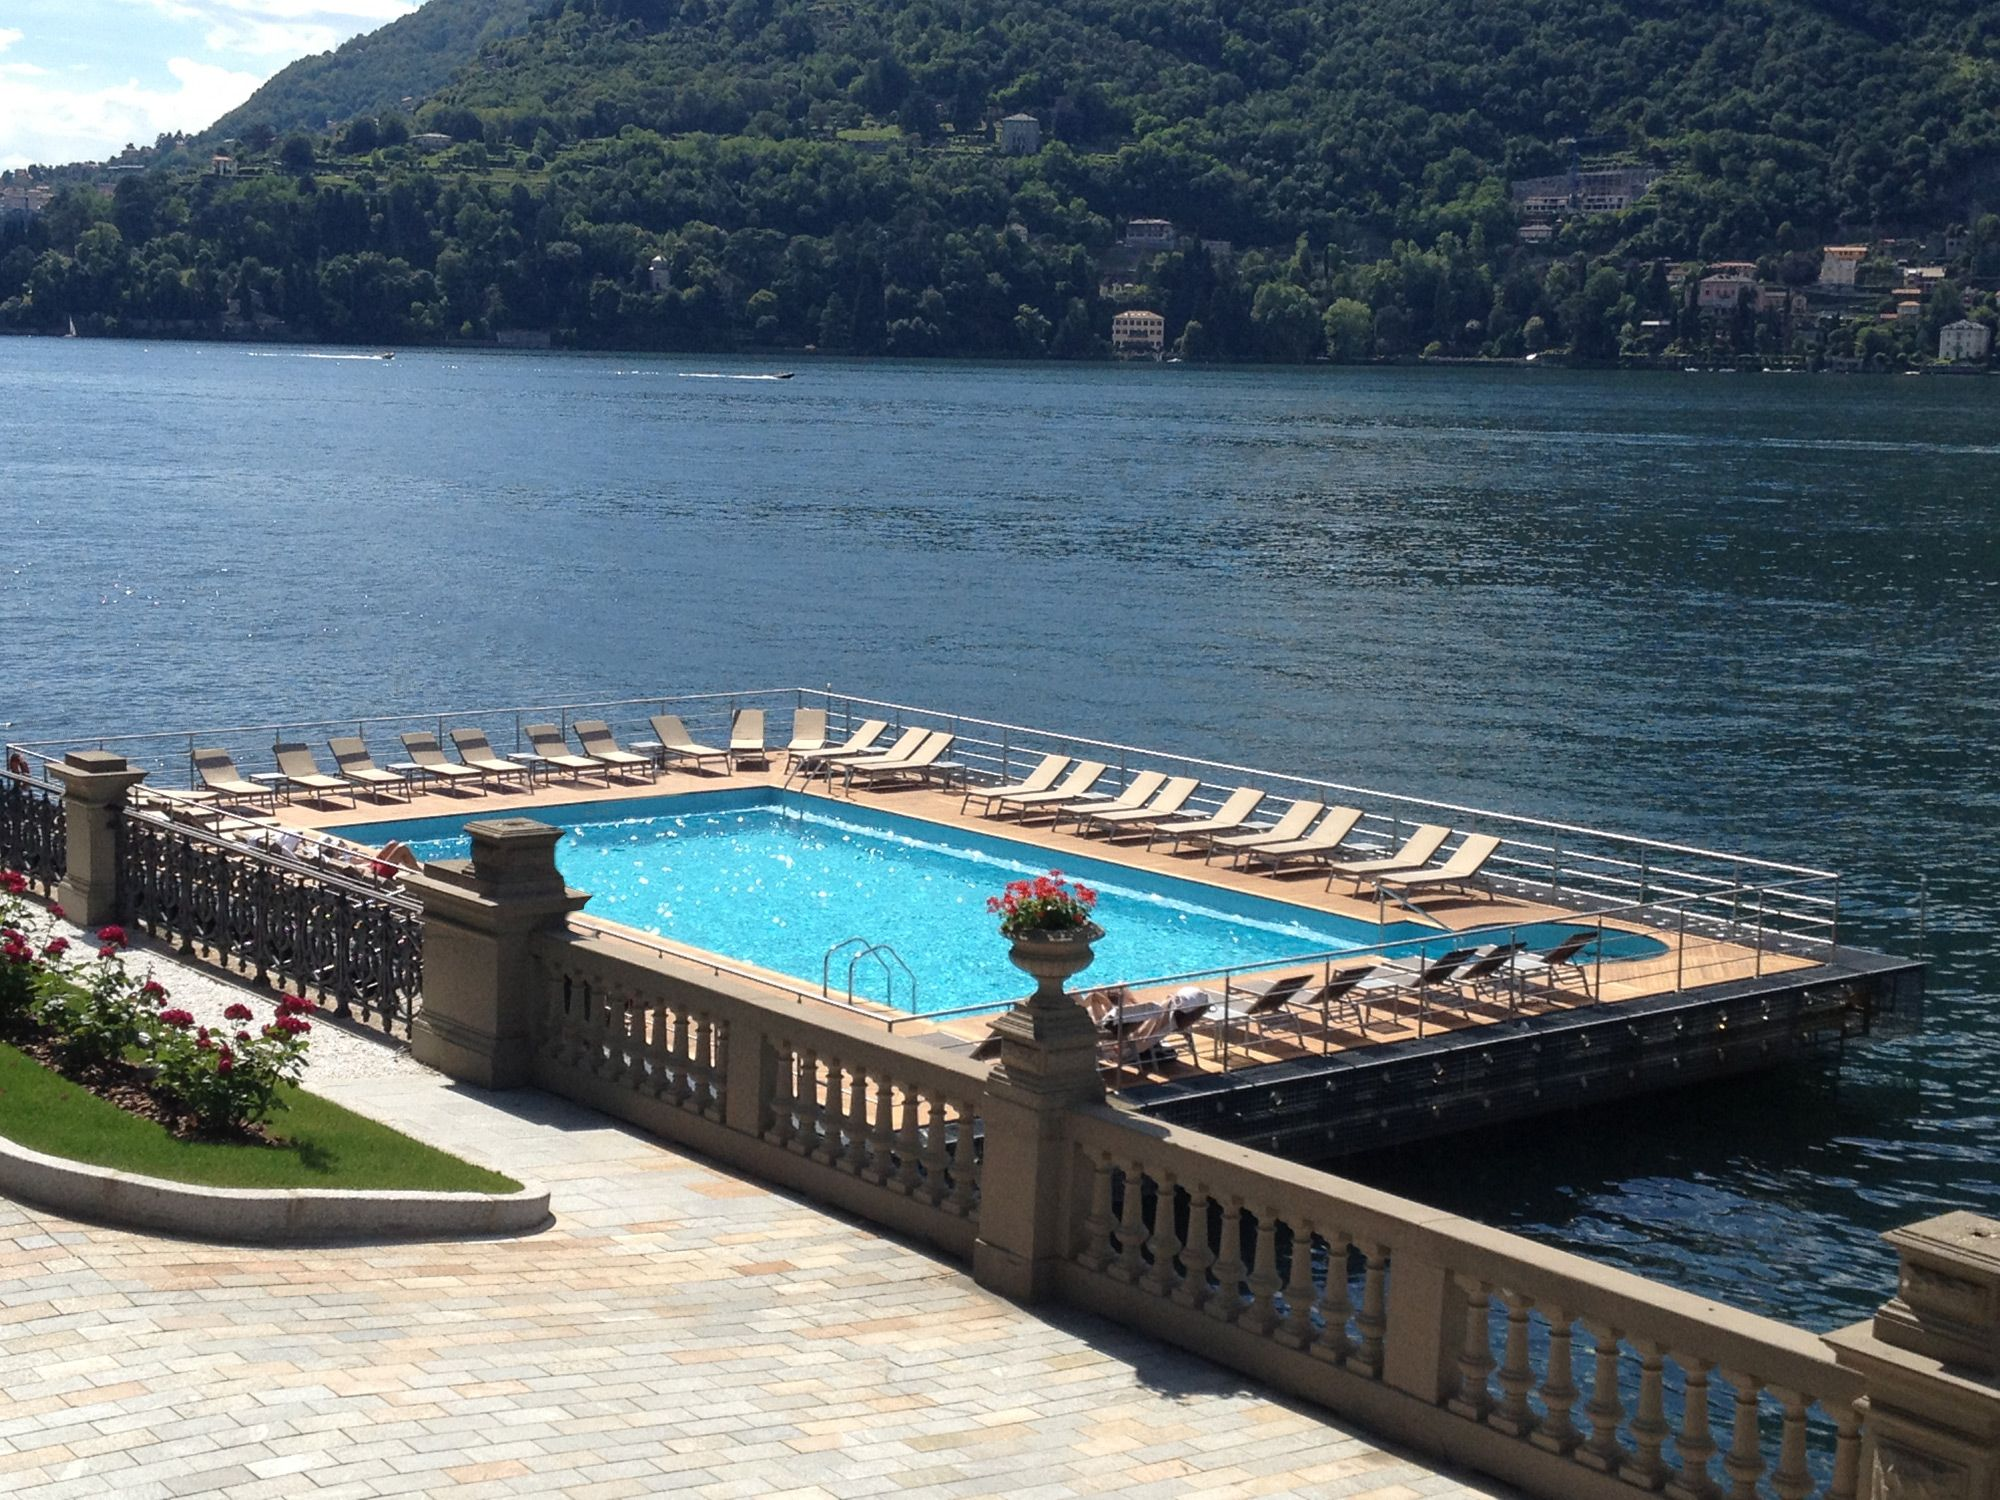 Come This Summer To Lake Como Castadiva Resort Spa Offers The Best Of Everything A Refined Gourmet Cuisine A Daydream Spa A Go Lake Como Lake Resort Lake